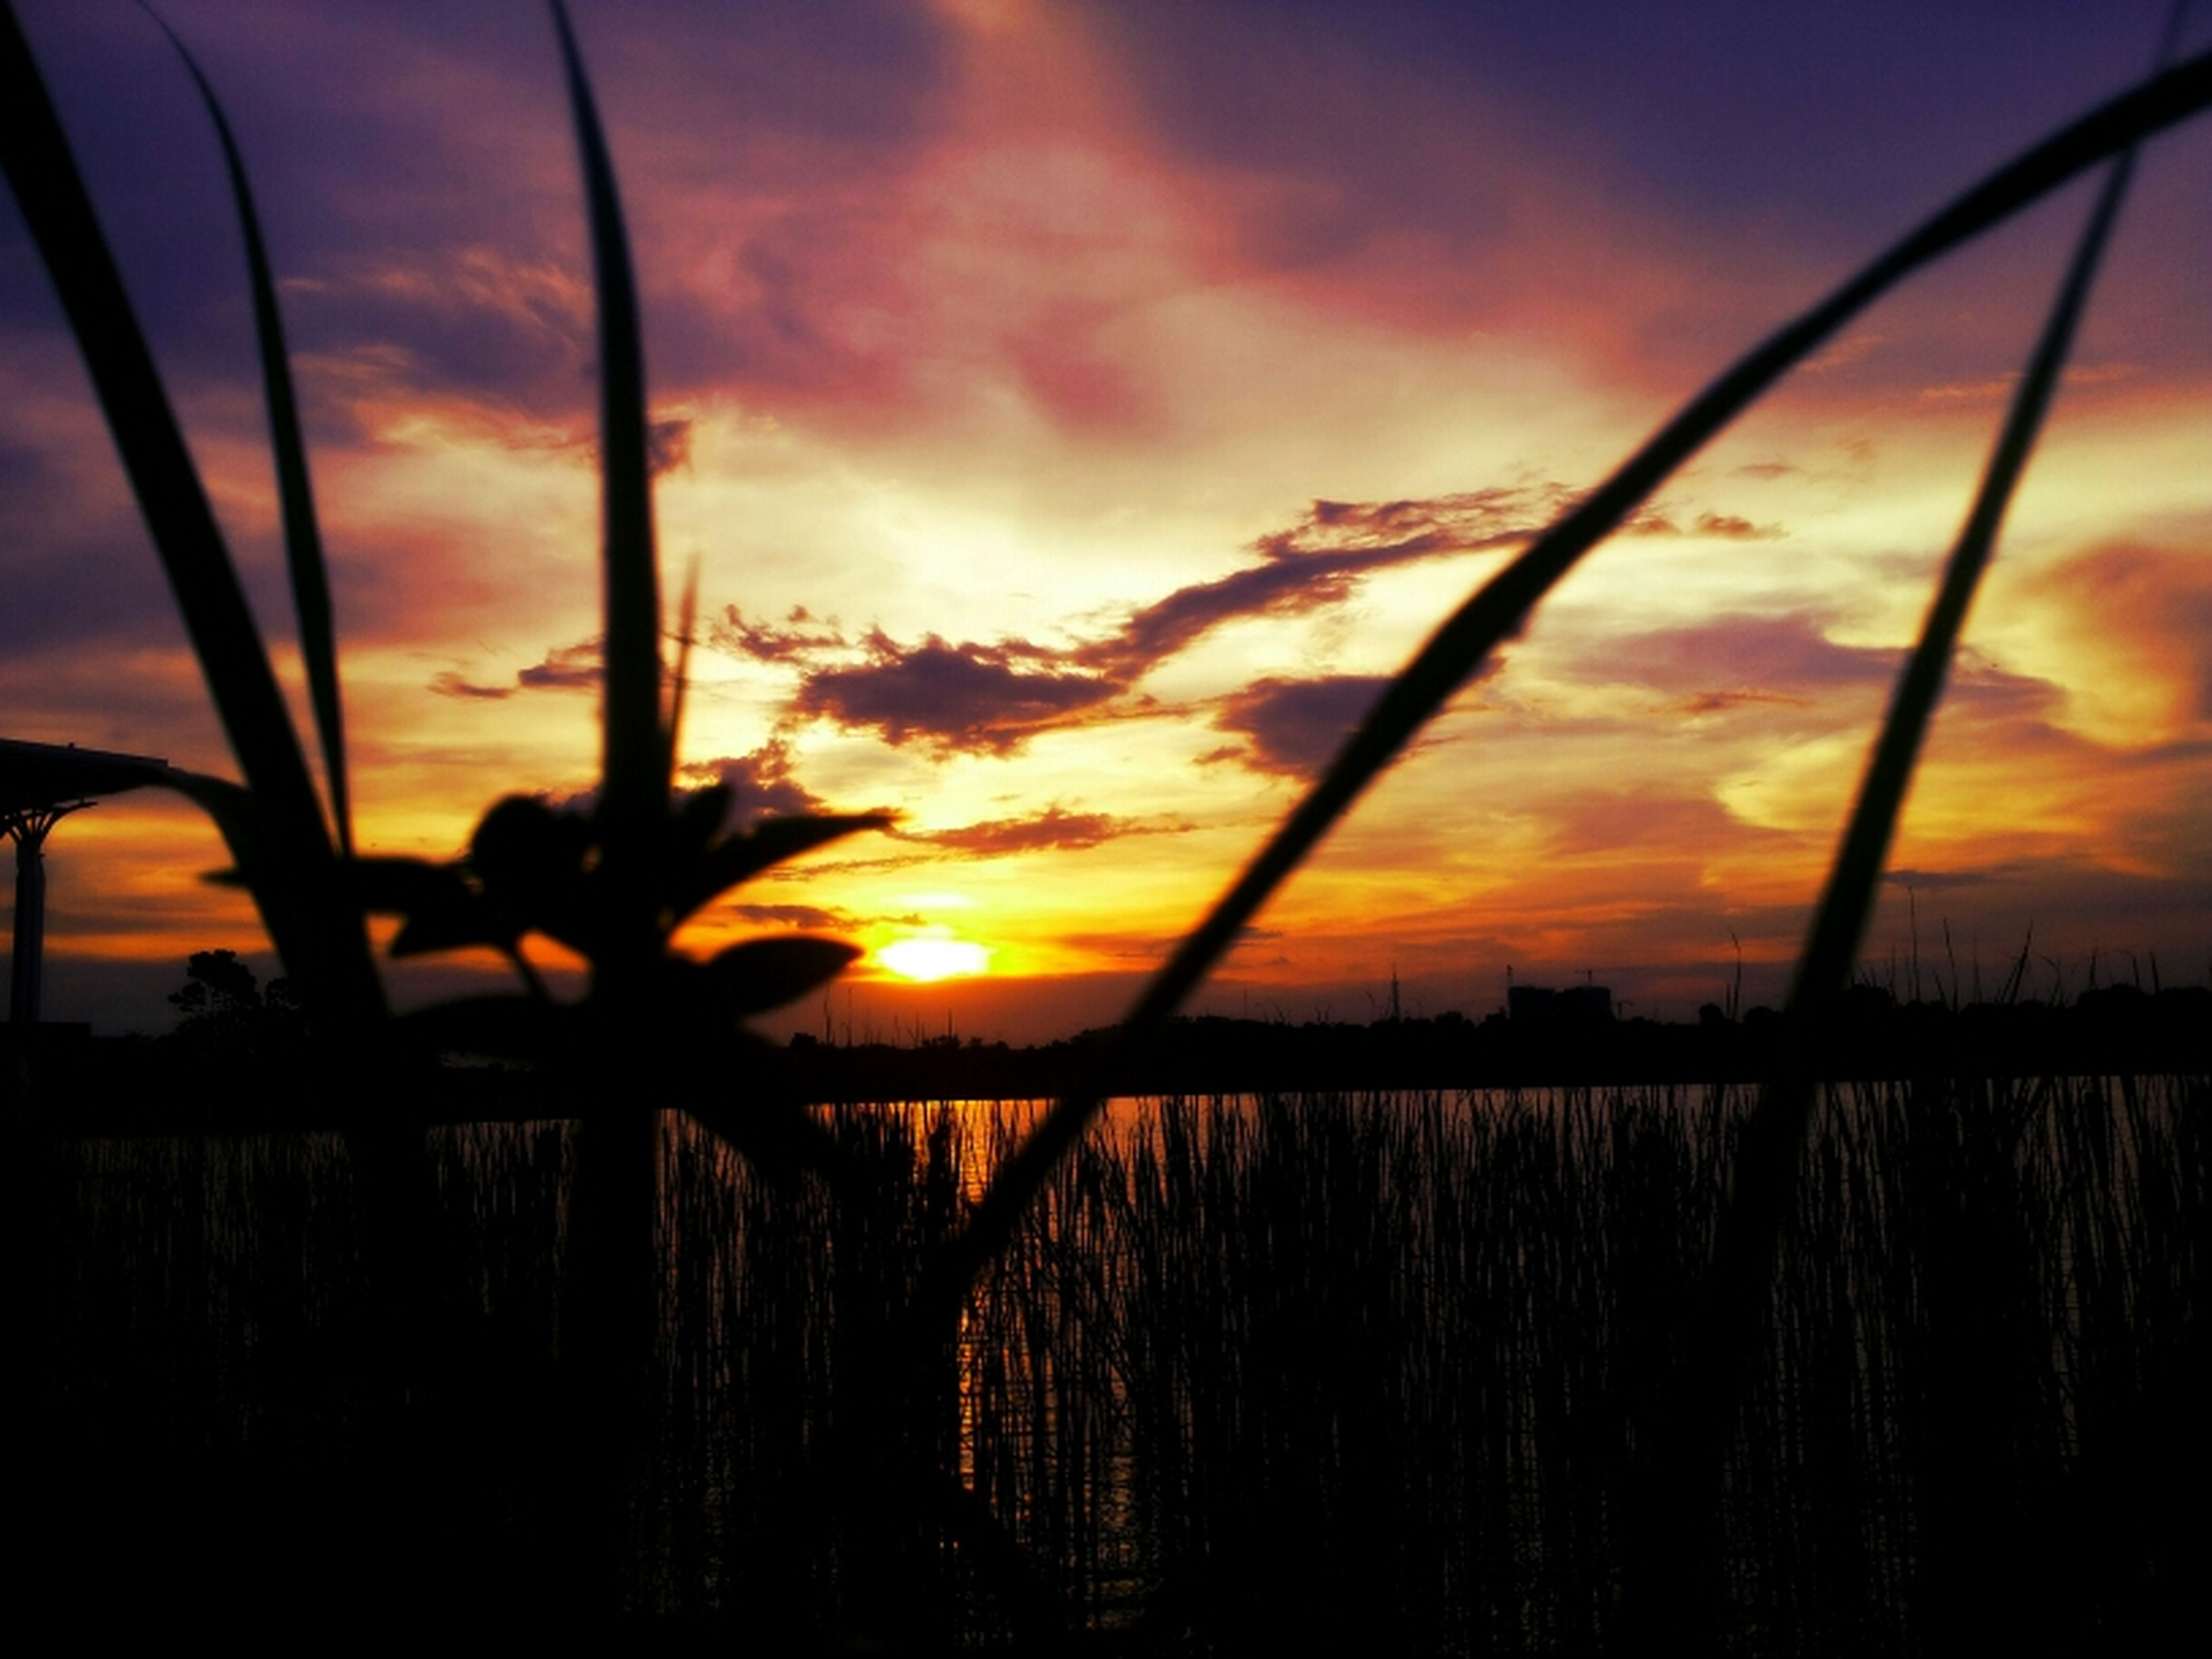 sunset, sky, orange color, water, scenics, tranquility, silhouette, tranquil scene, beauty in nature, nature, cloud - sky, reflection, idyllic, sea, sun, dramatic sky, cloud, plant, lake, horizon over water